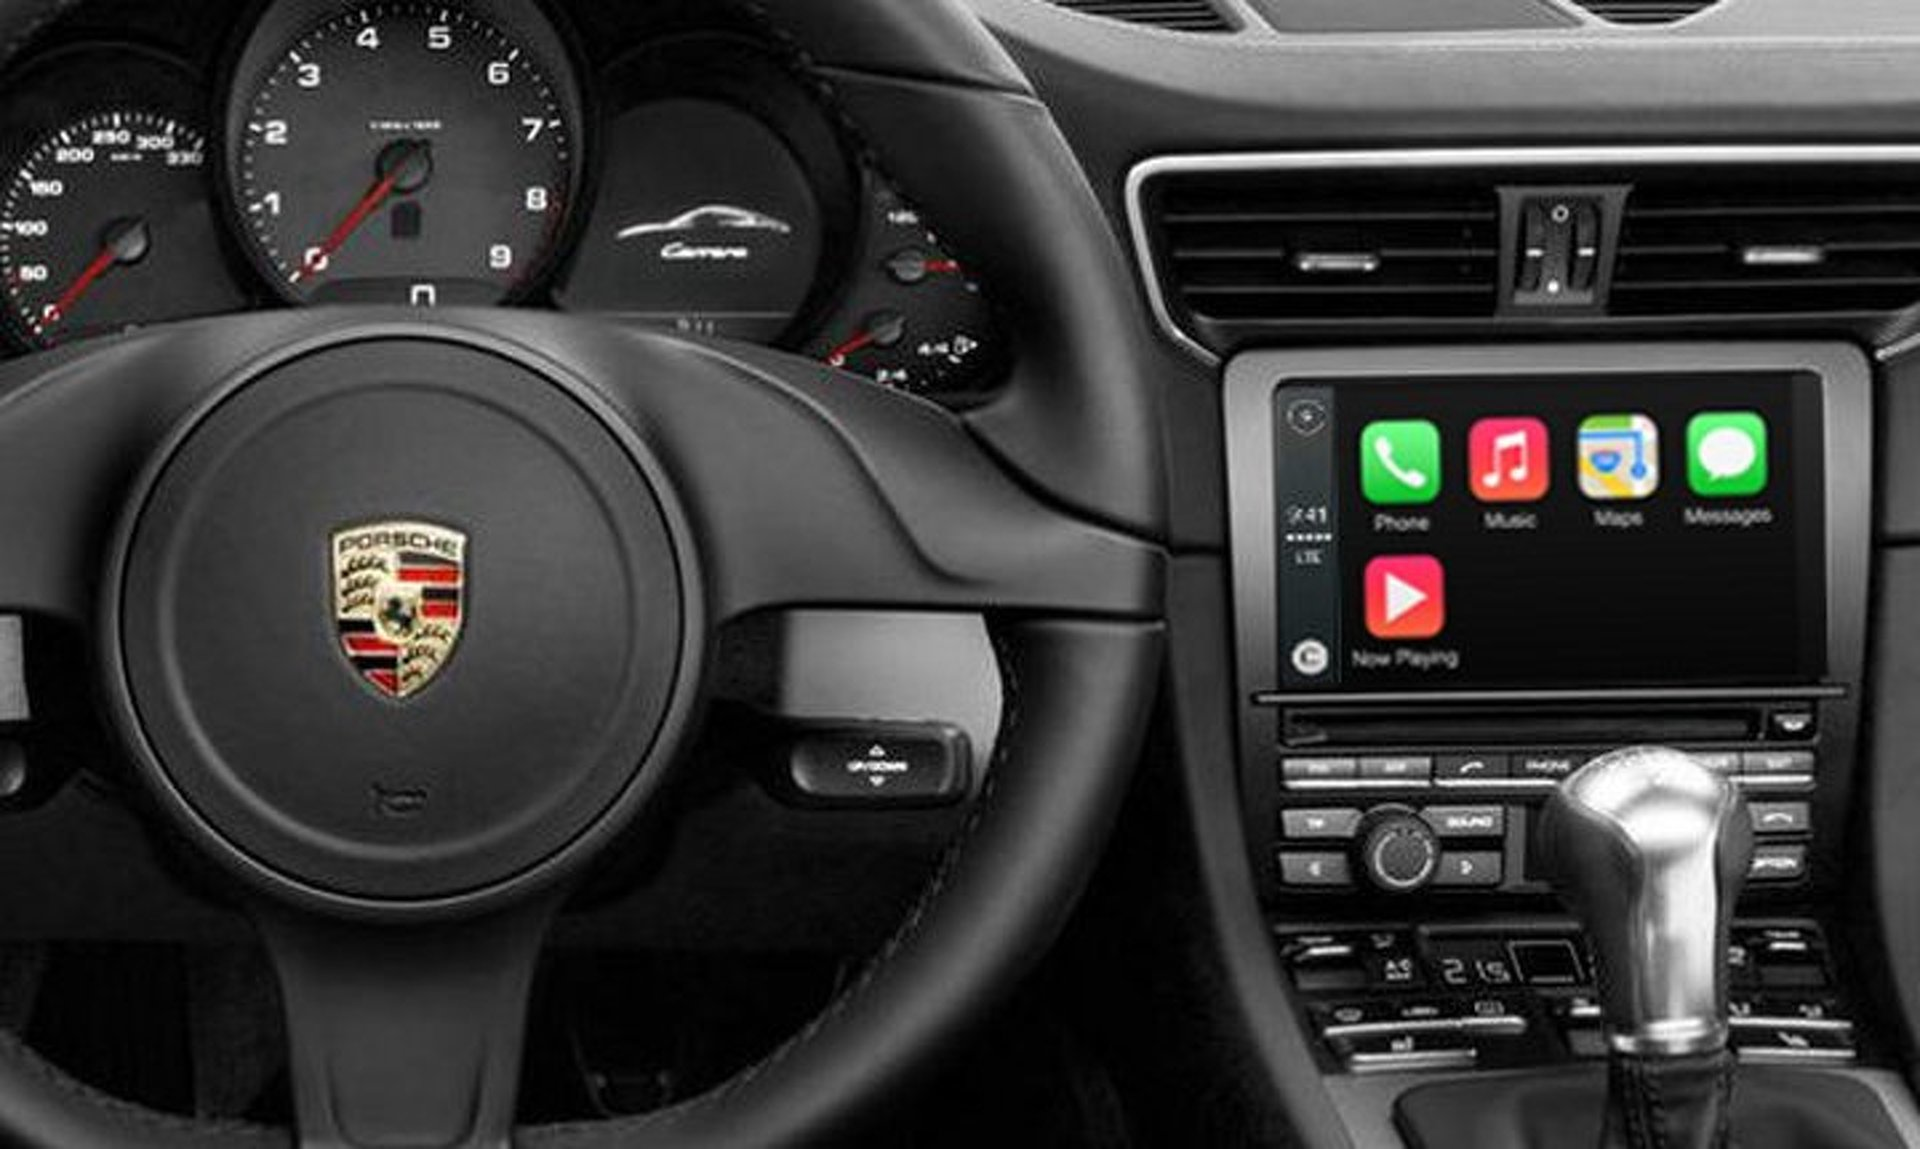 Porsche Opts for Apple CarPlay Instead of Android Auto Over Data Issues